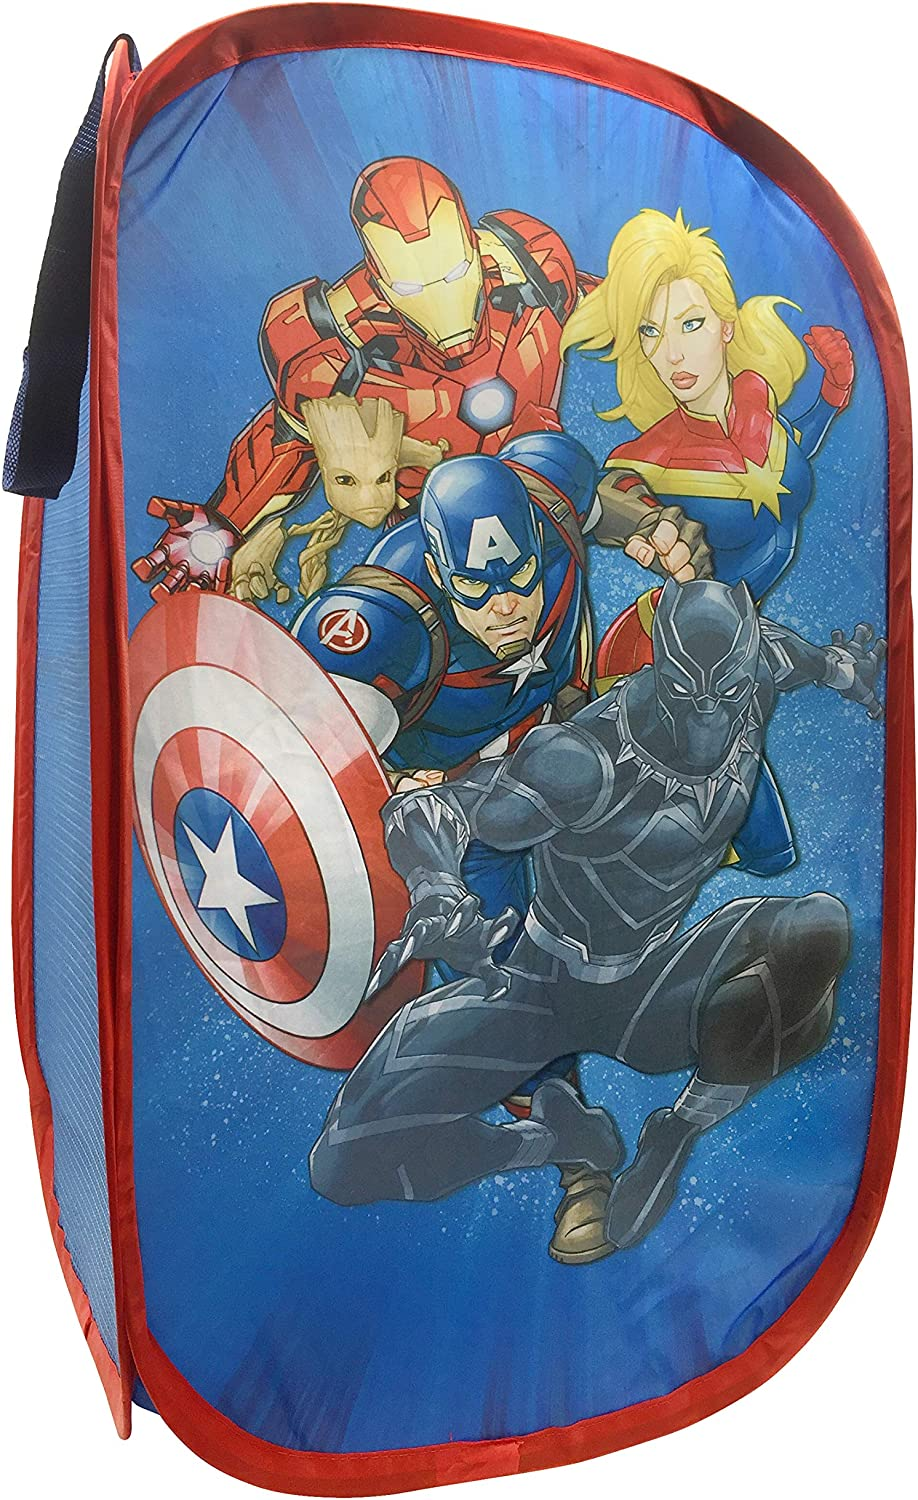 "Marvel Avengers Blast Off Pop Up Hamper - Features Captain Marvel, Iron Man, Black Panther, and Captain America - Mesh Laundry Basket/Bag with Durable Handles, 22"" x 14"" (Official Marvel Product)"